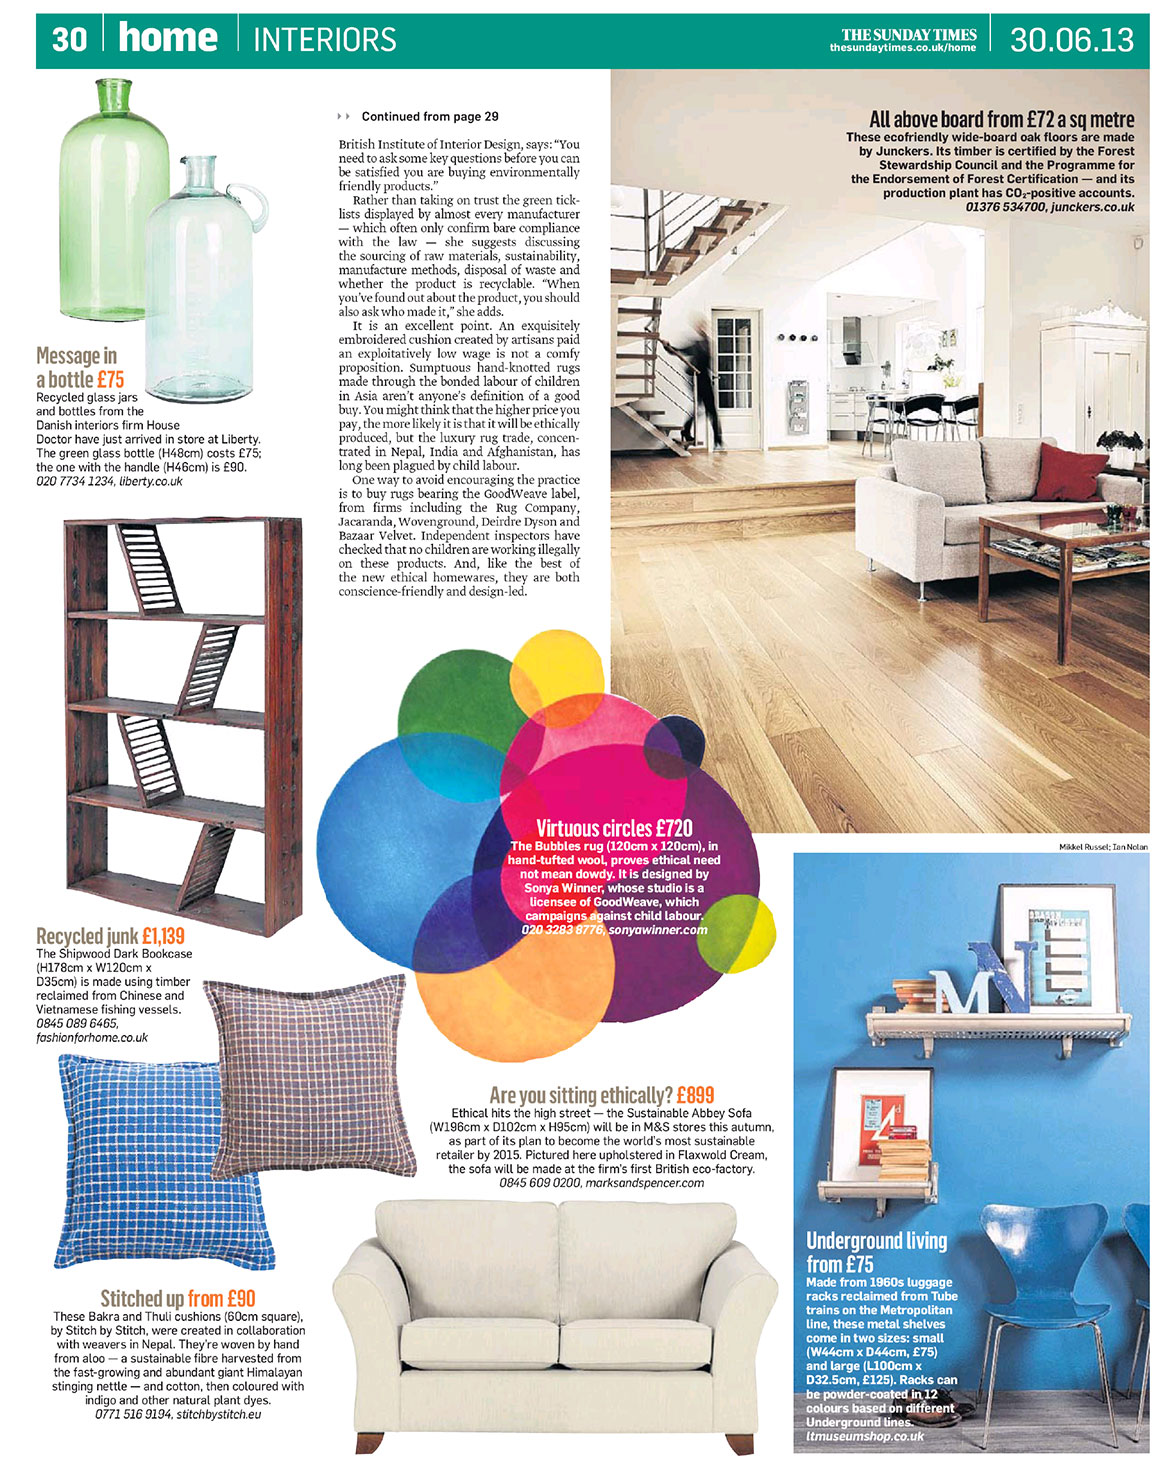 Sunday Times Homes & Property